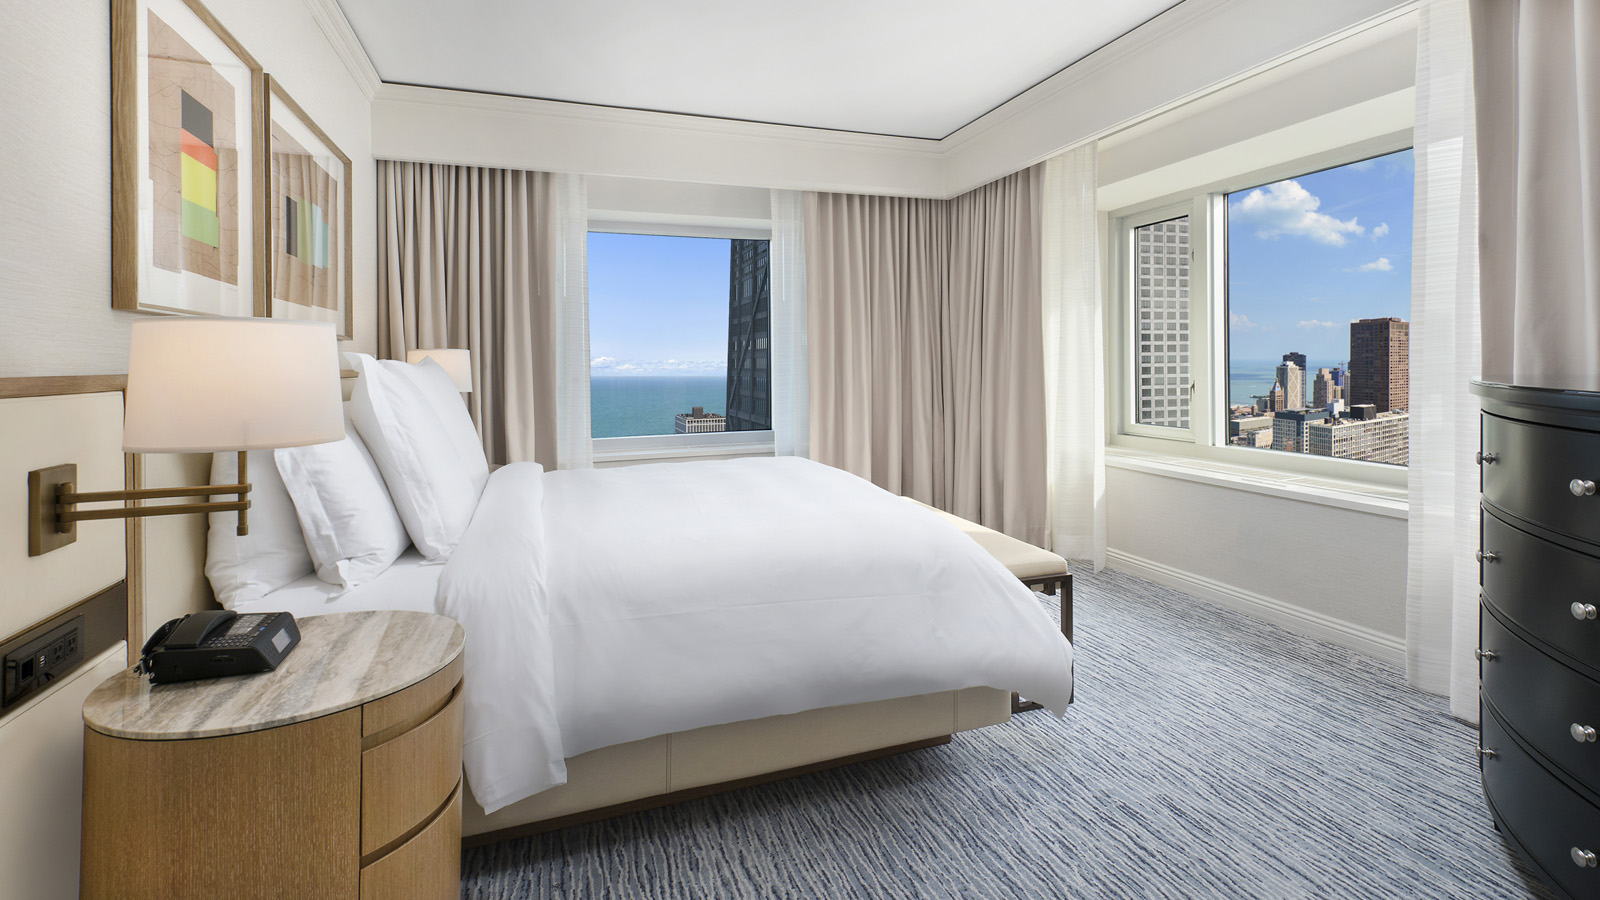 Four seasons hotel chicago to complete renovation in for Hotel decor chicago